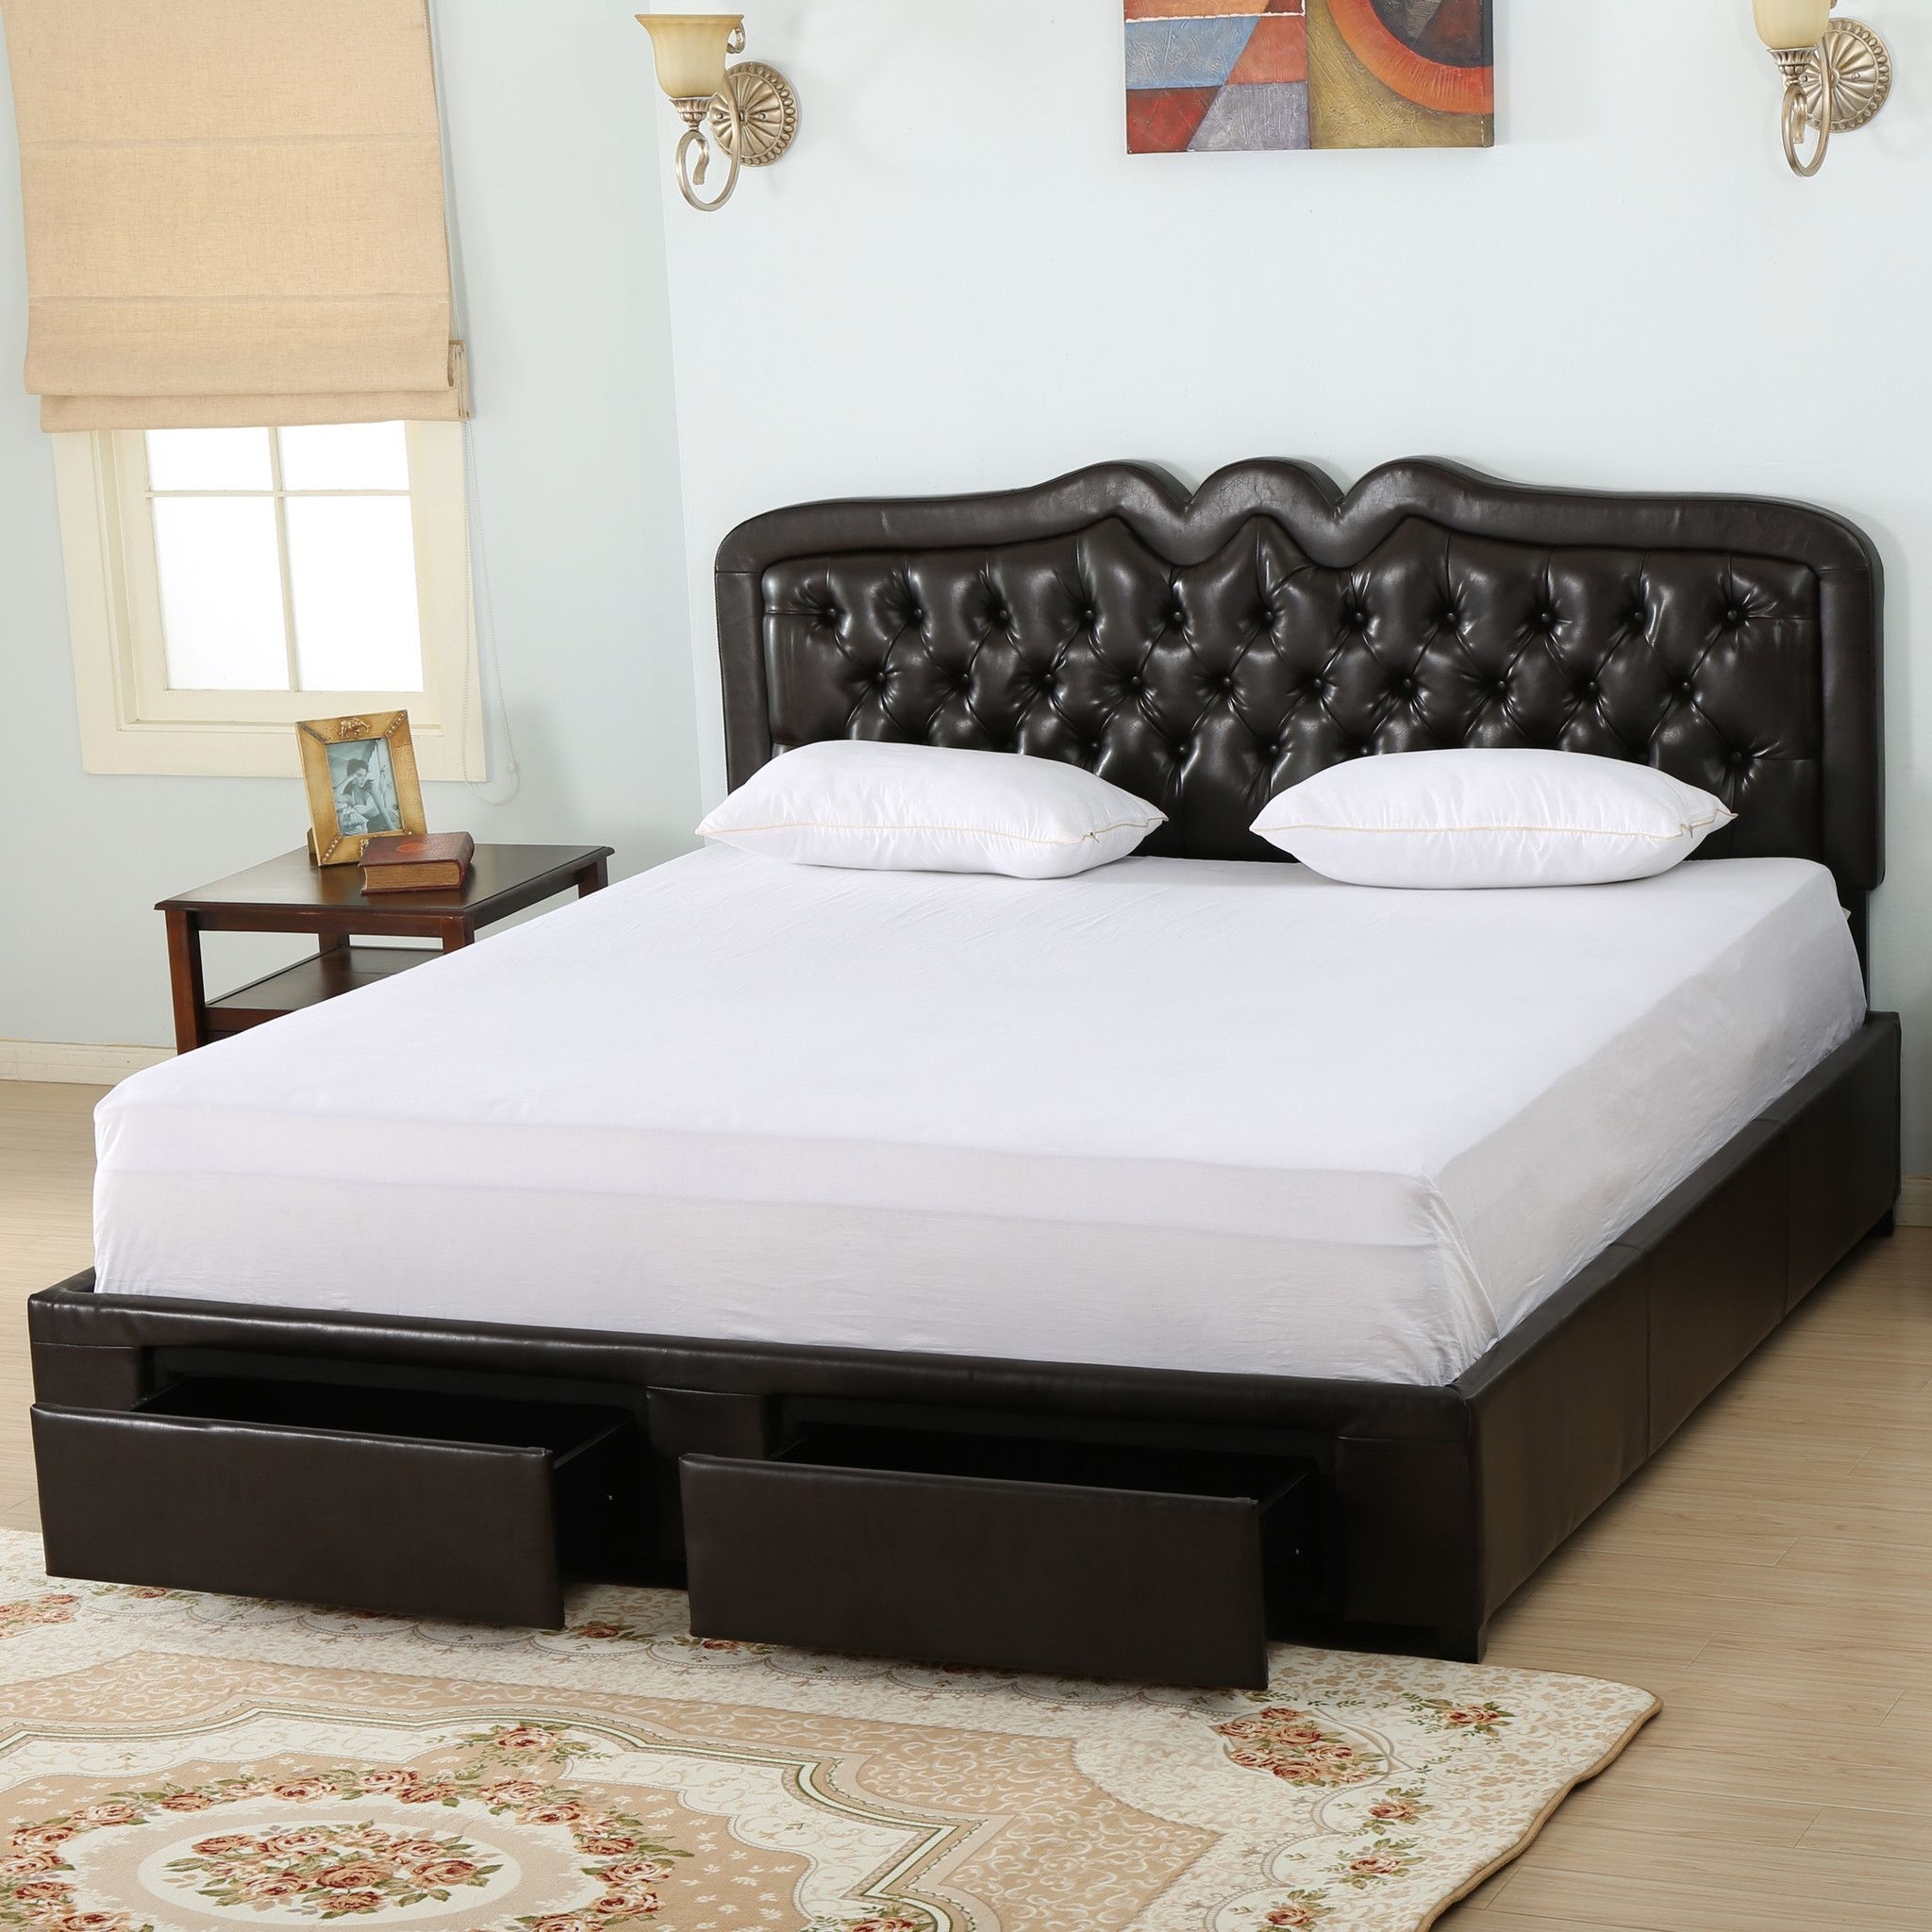 Selle brown leather queen bed set w drawers products pinterest